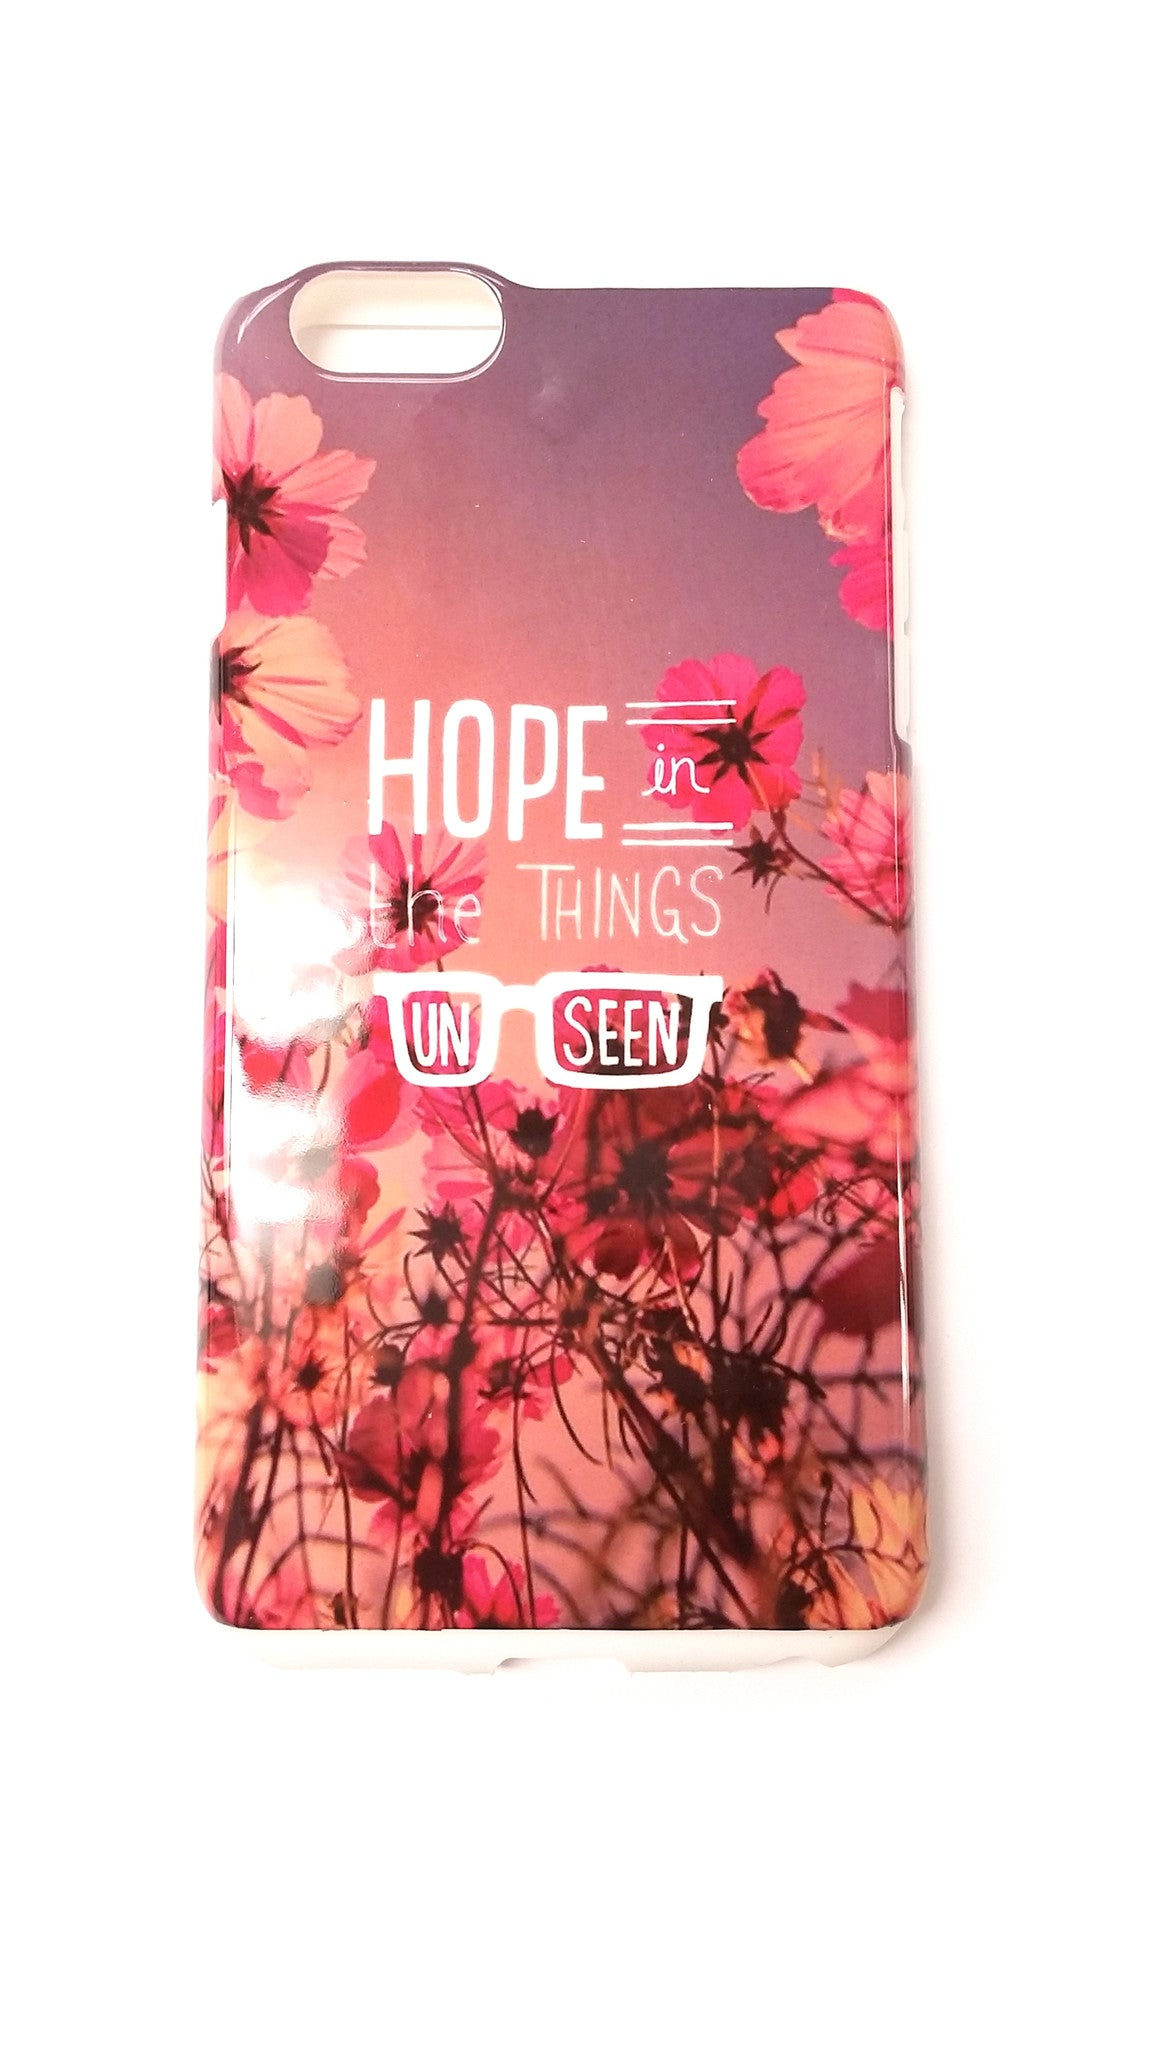 Hope In The Things Unseen iPhone 6/6S/6 Plus Case - Good Row Clothing  - 1